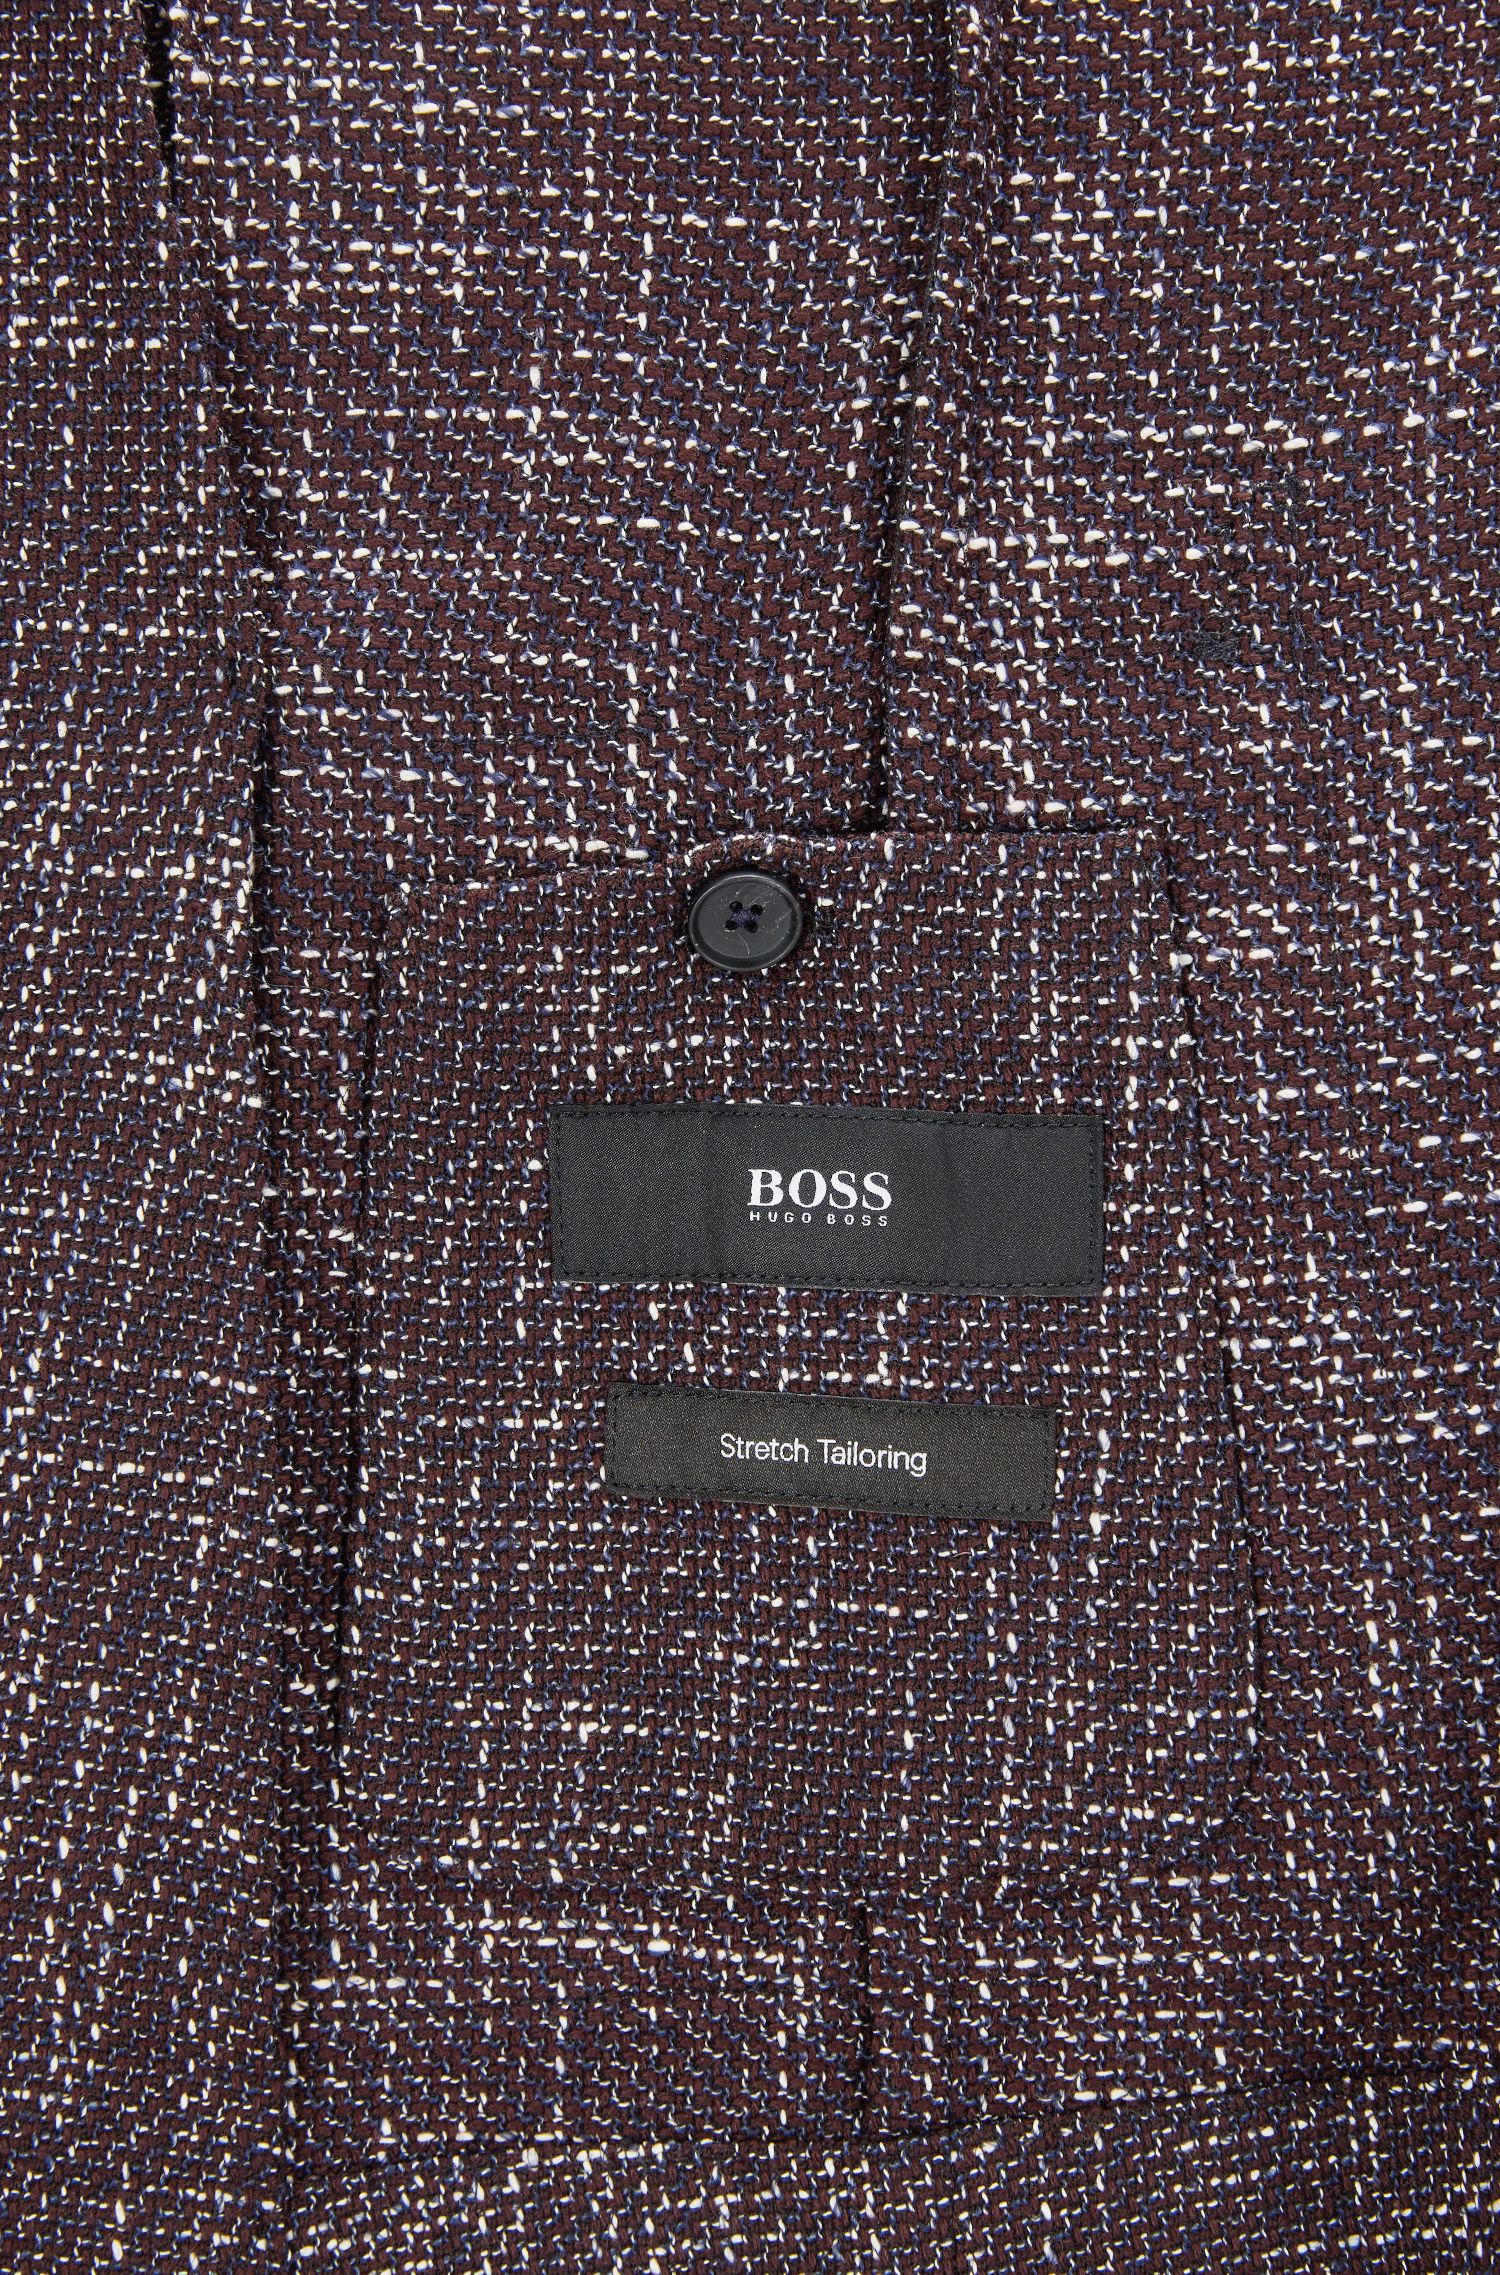 Virgin Wool Blend Tweed Sport Coat, Slim Fit | Nold, Dark Red